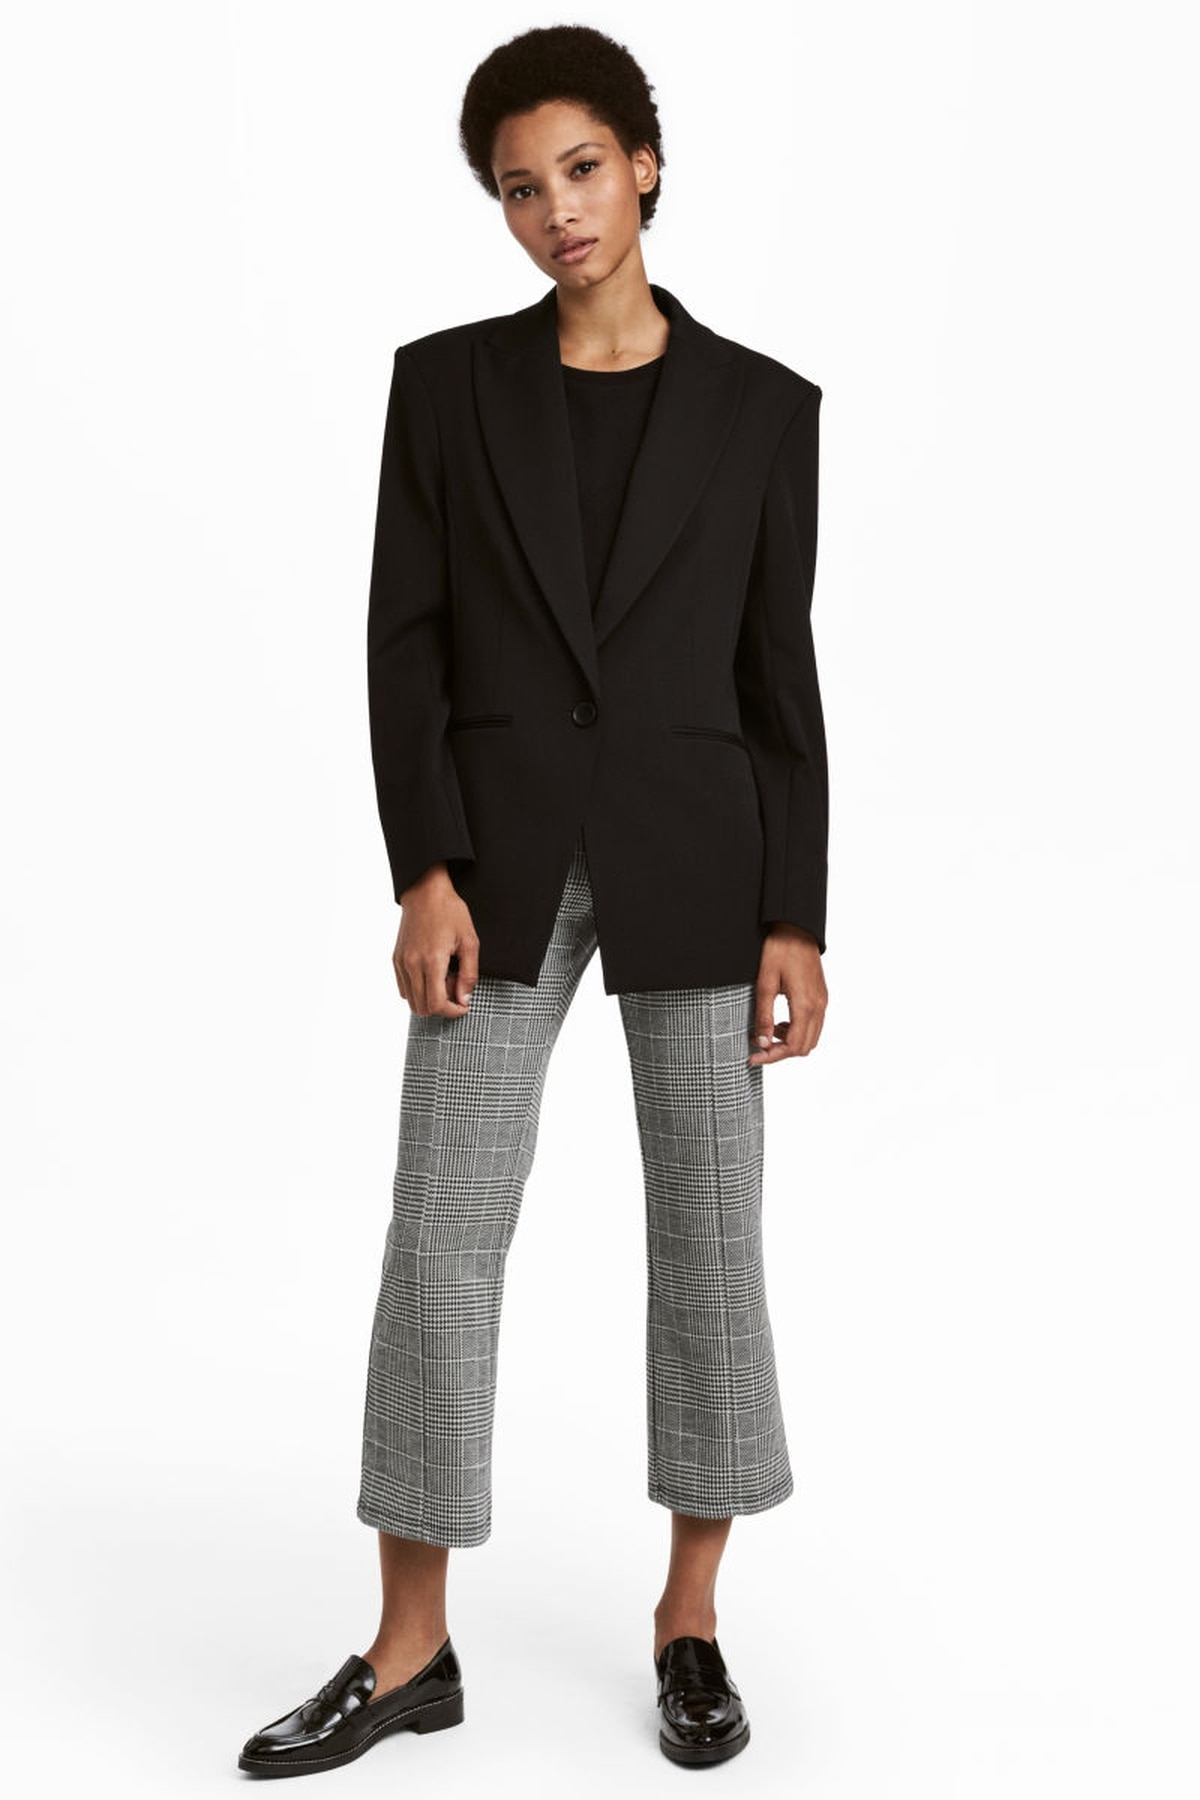 5c9787ef5a7b5 ... Ankle-length pants at HM, also available in black for $19.99 today. (HM)